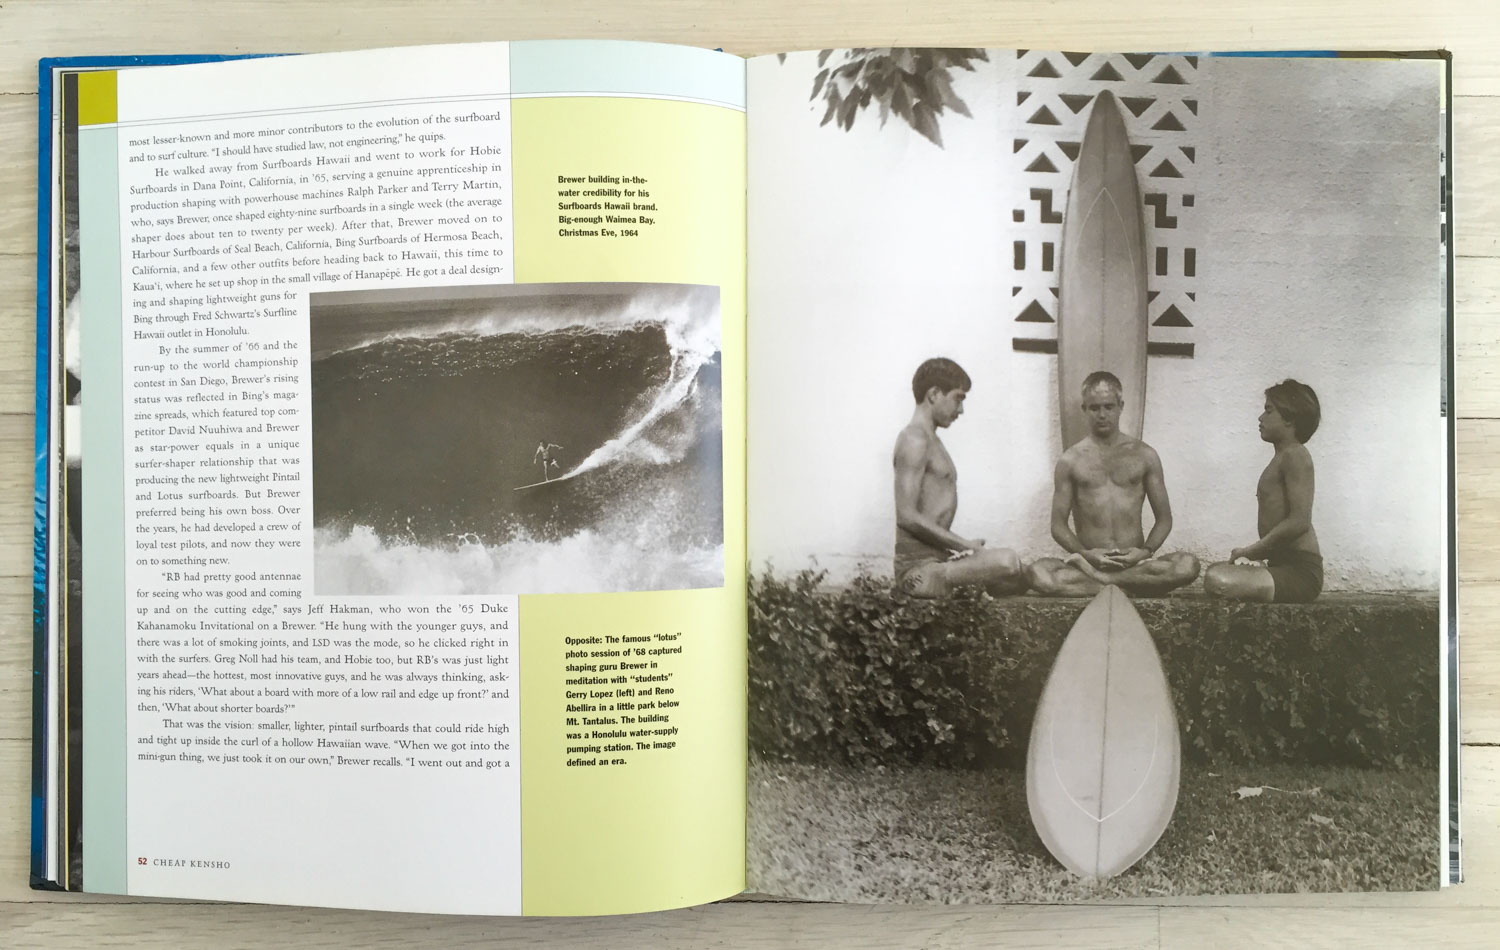 The Way of the Surfer  by Drew Kampion. Concept and Acquisition by Richard Olsen. Russell Hassell, Graphic Design. Stanley Redfern, Production Manager. Harry N. Abrams, Inc., Publishers.